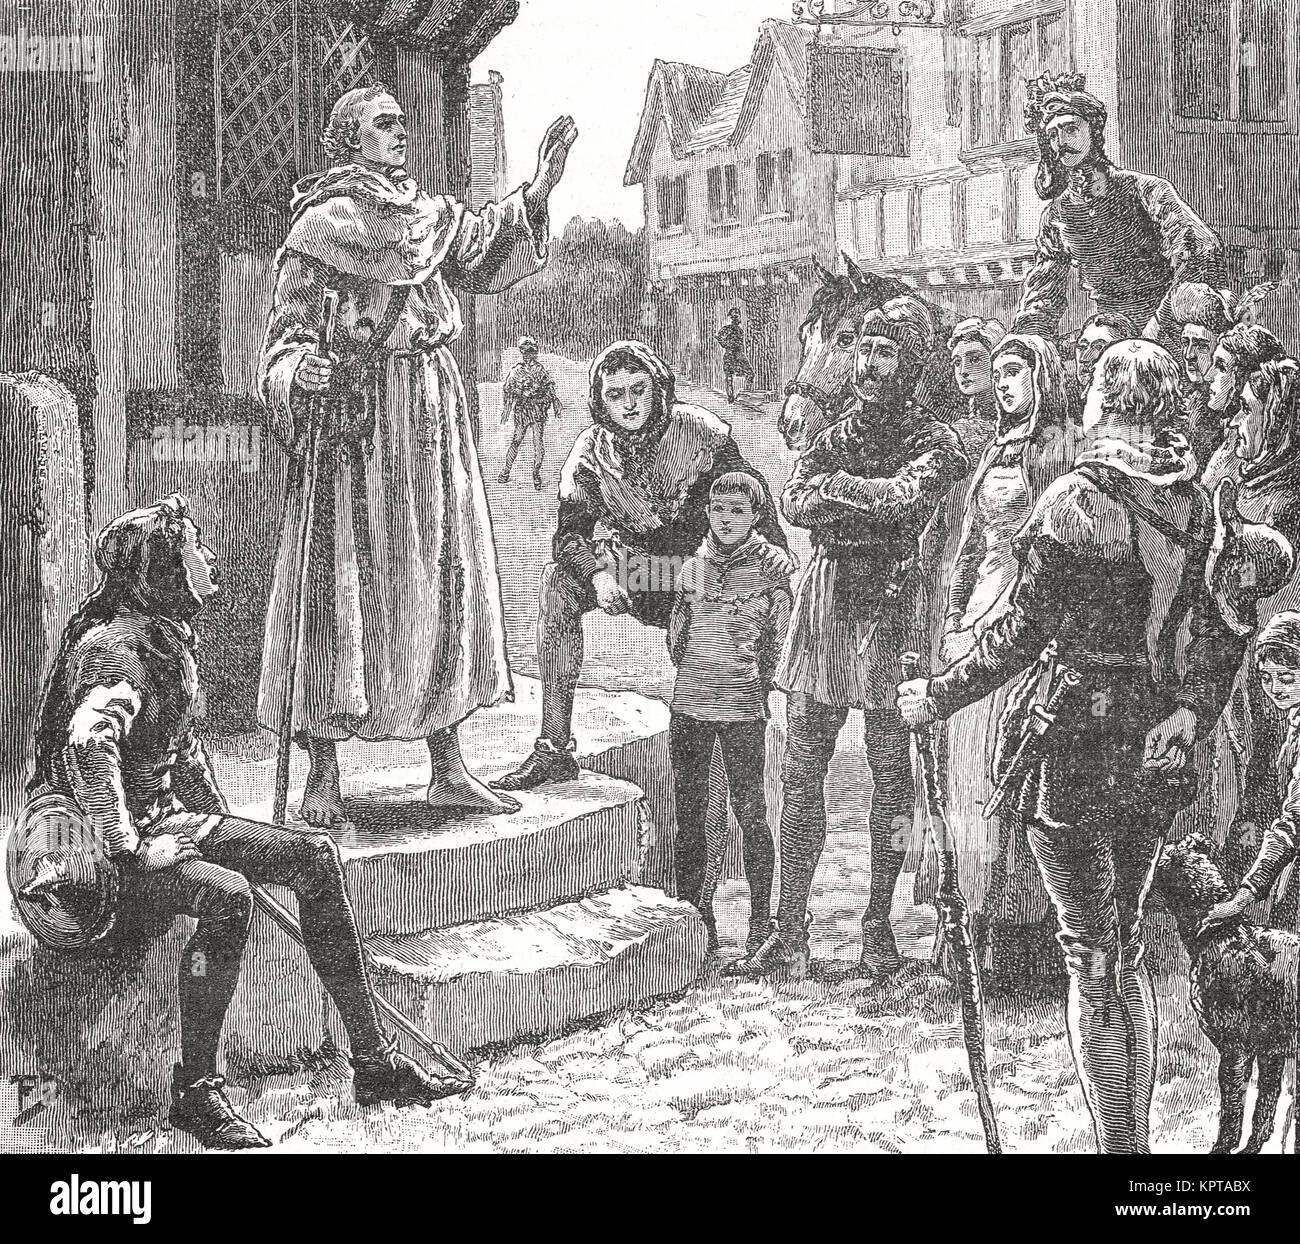 A poor priest of John Wycliffe preaching to the people, 14th Century - Stock Image